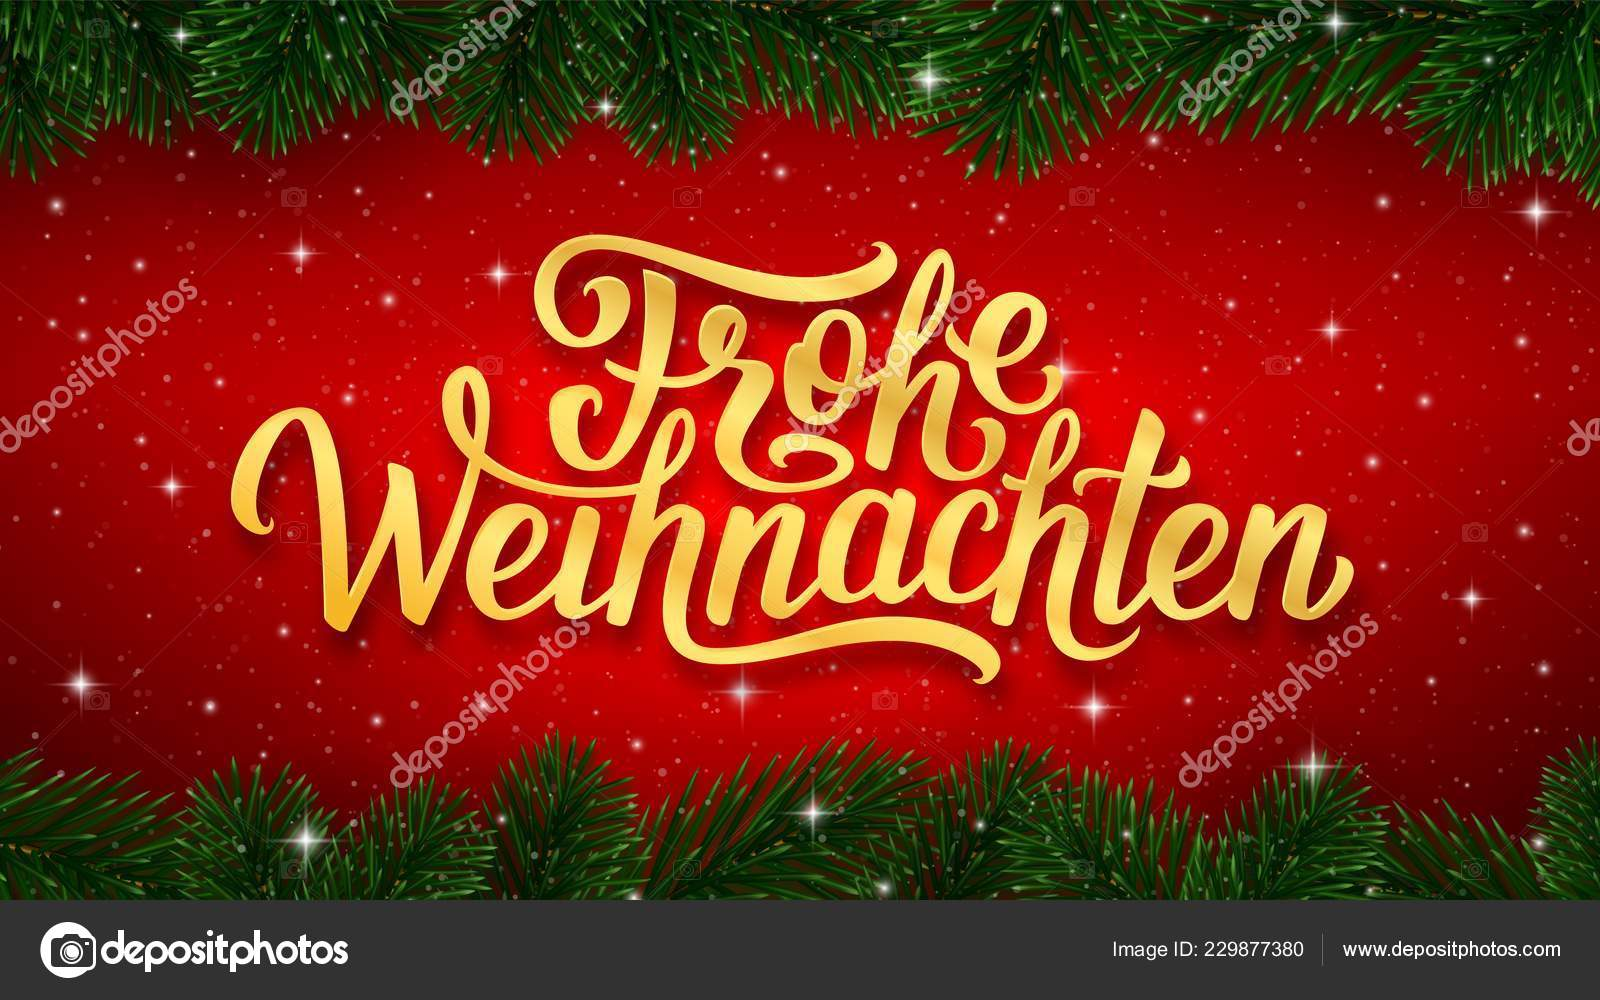 Merry Christmas German.Frohe Weihnachten German Merry Christmas Gold Calligraphy